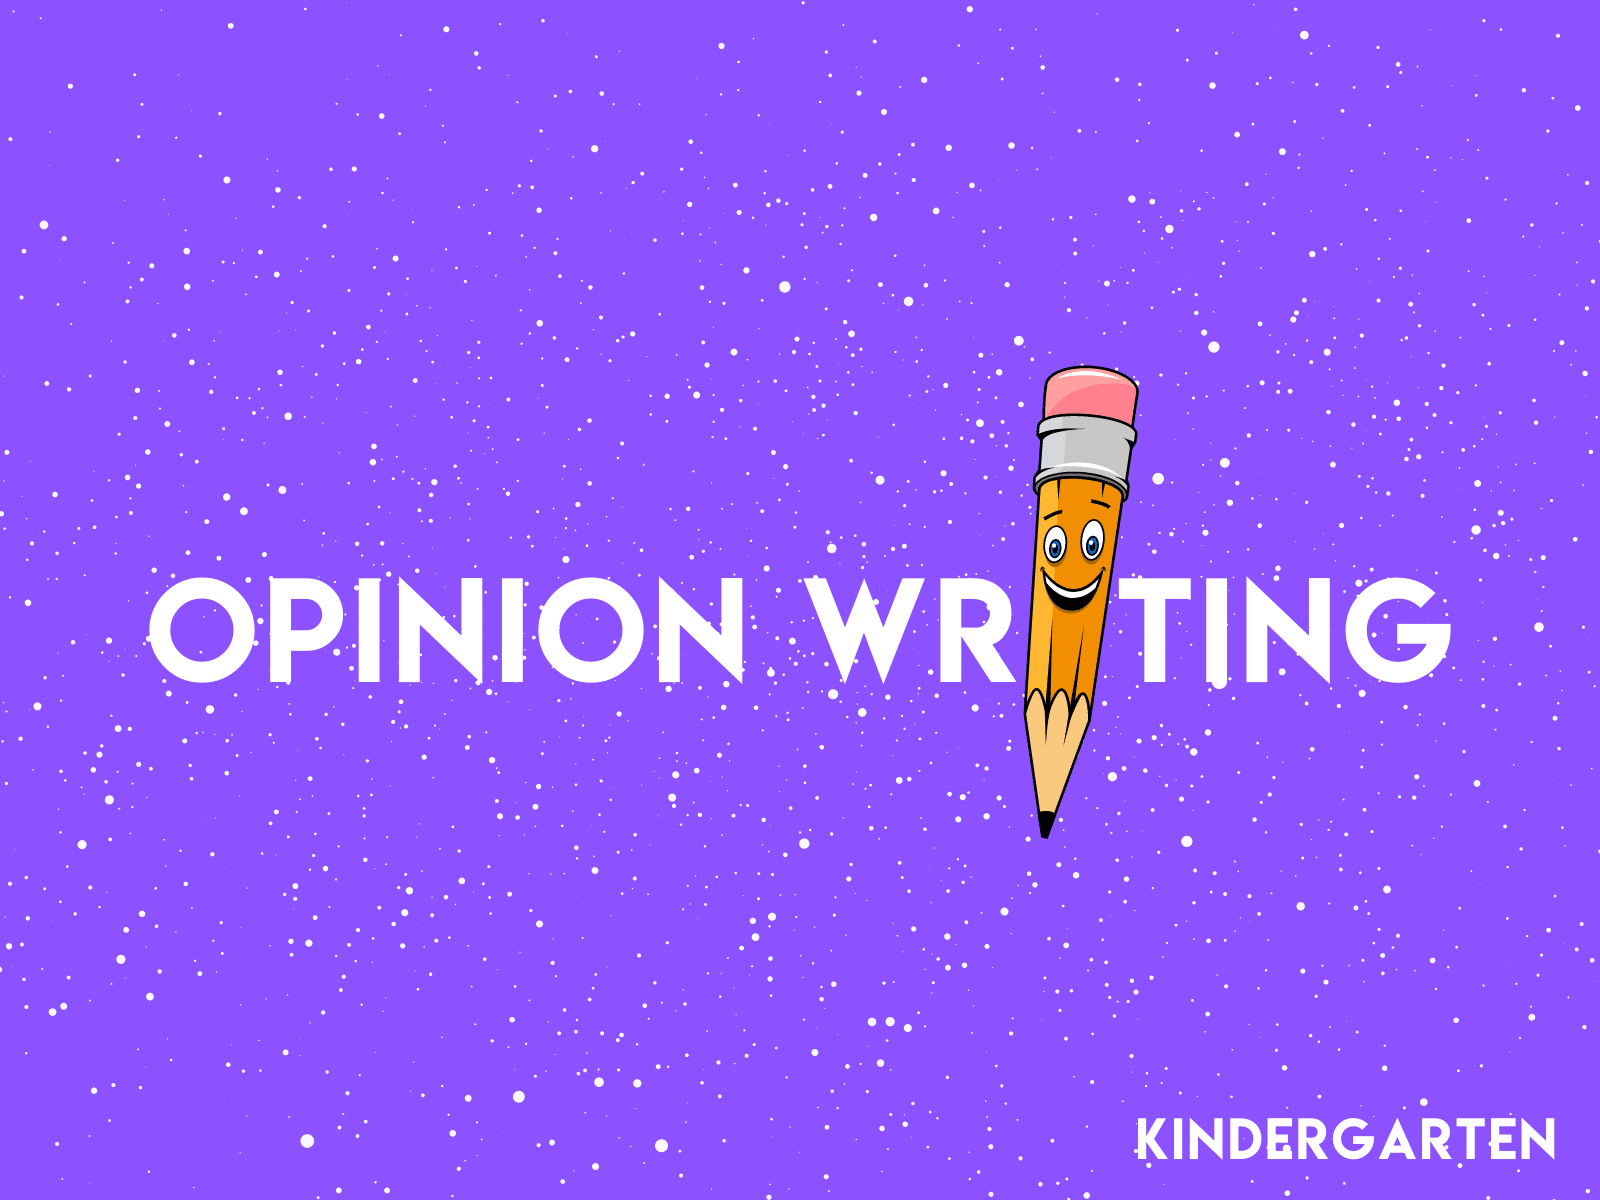 This free kindergarten writing resource will help teach opinion writing using the OREO technique.